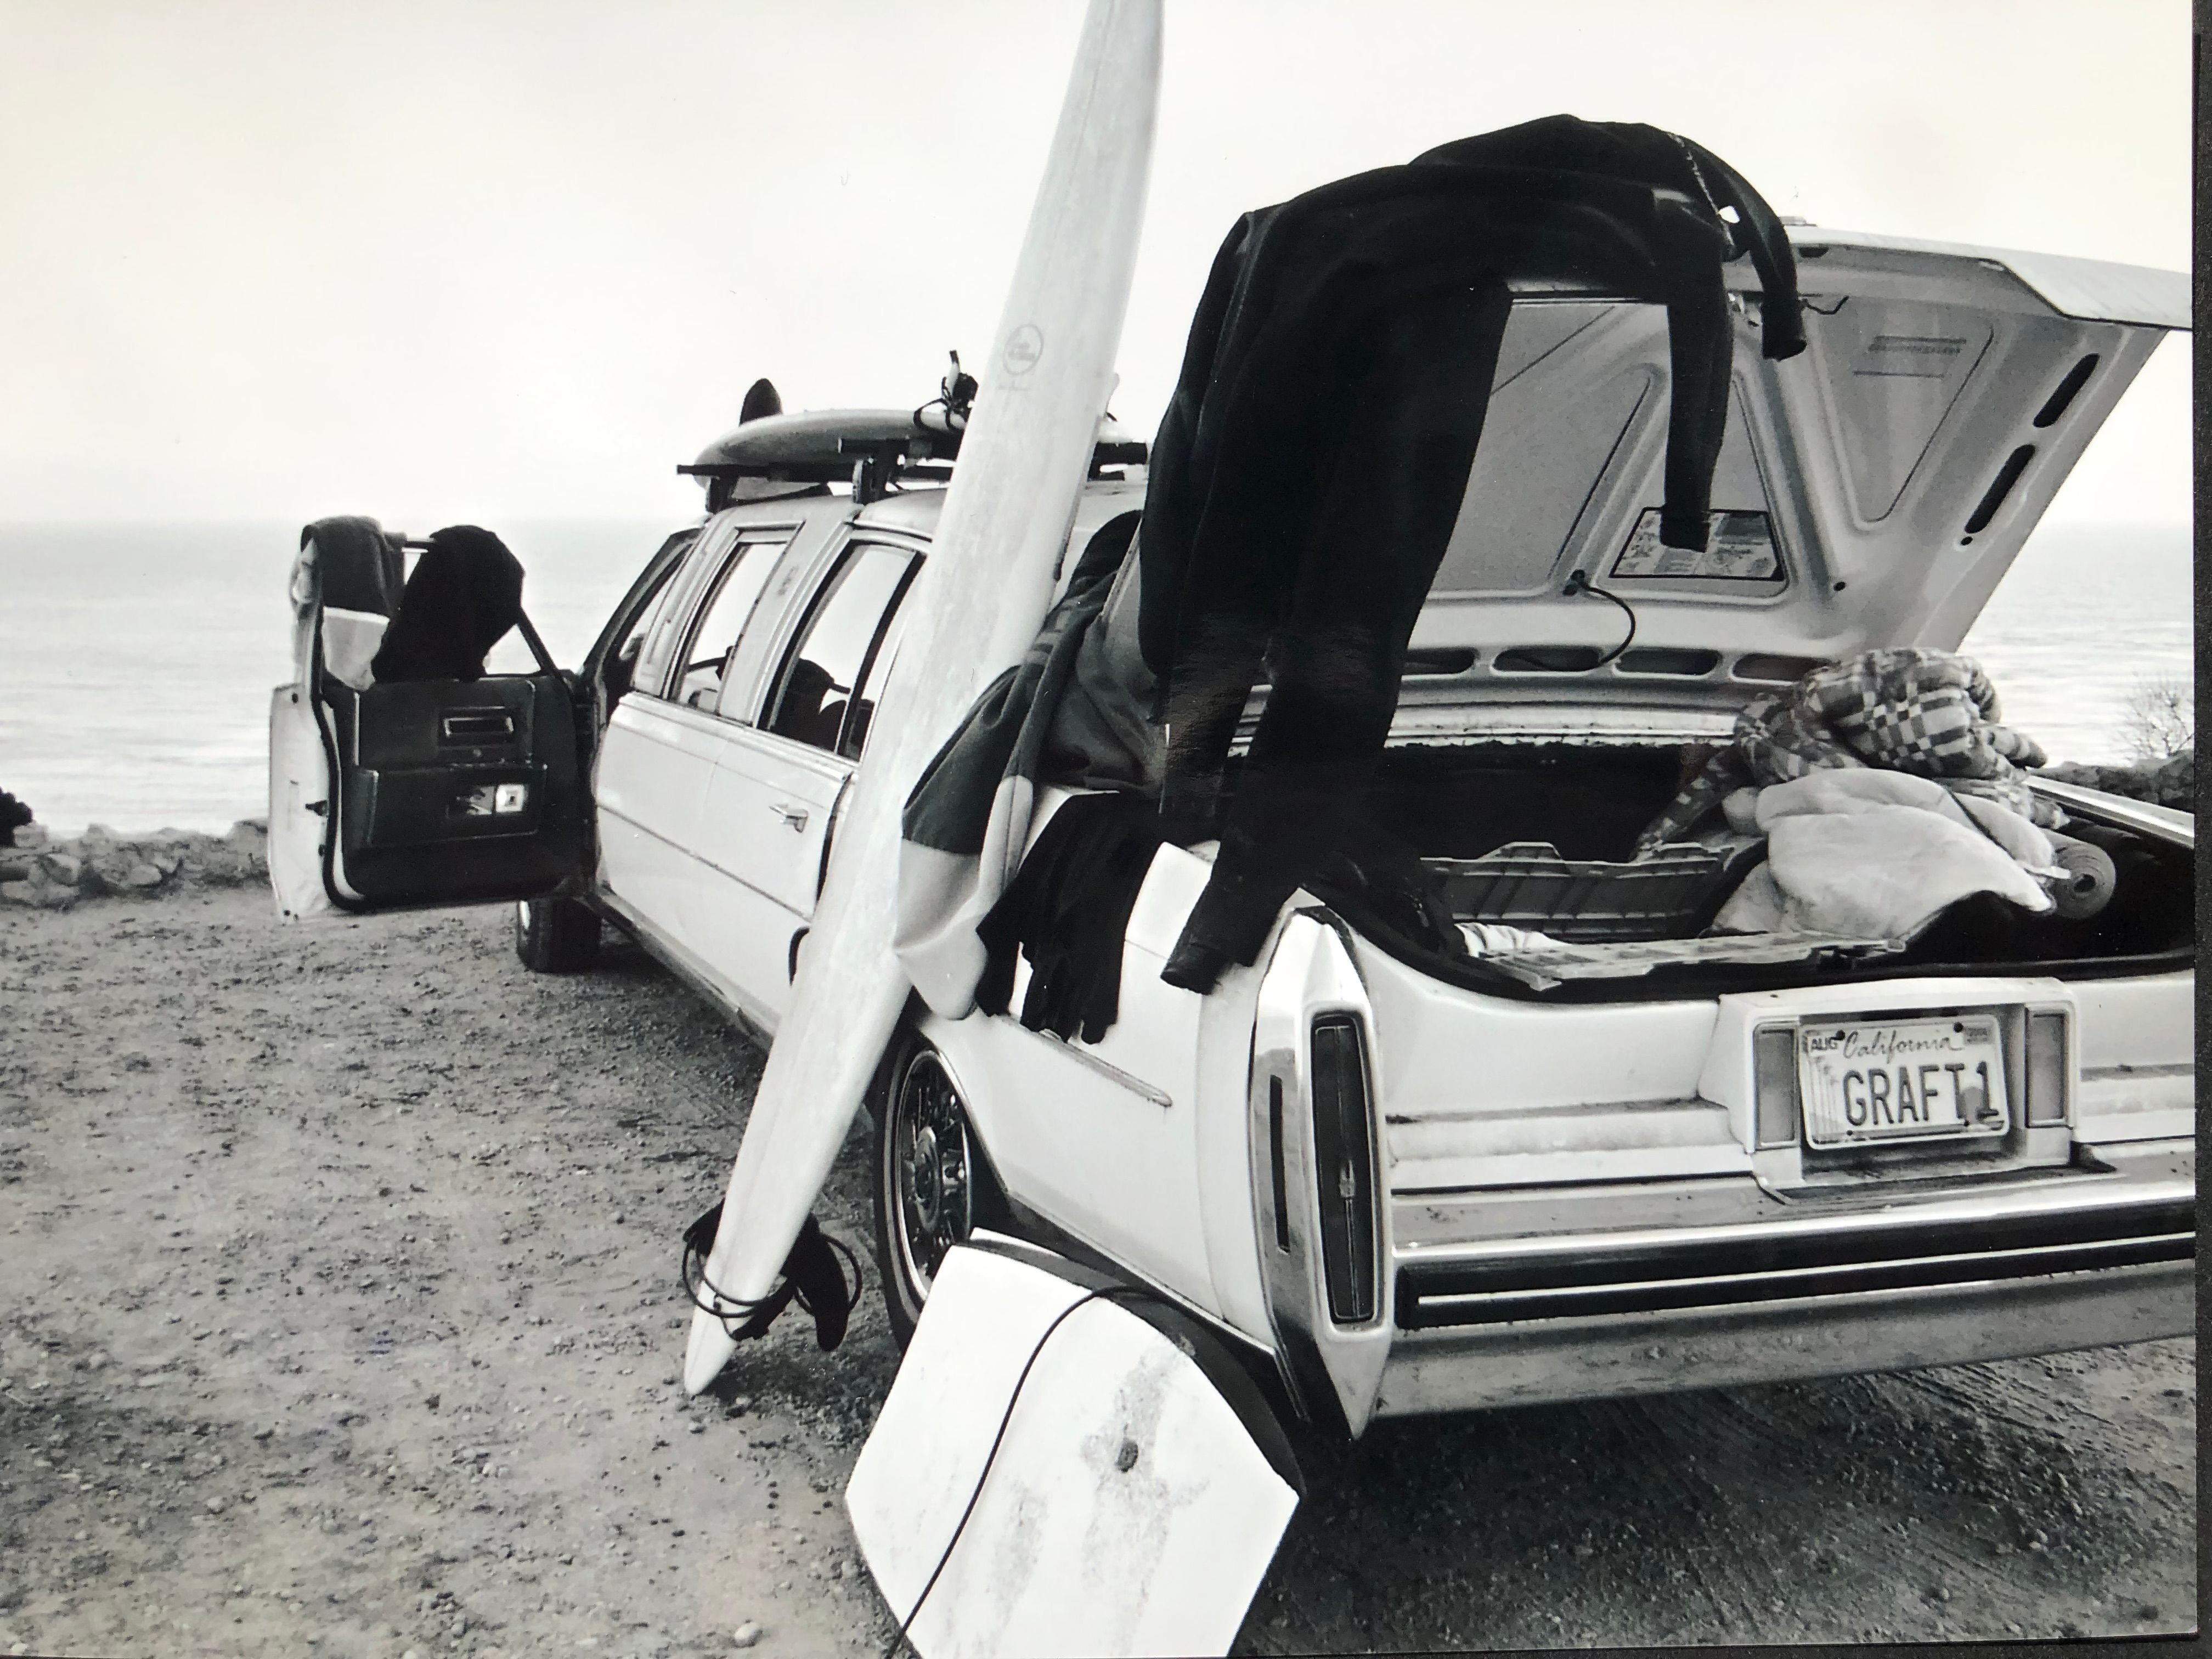 GRAFT car with surf equipment at a Californian beach in the late 1990s: mobility is closely linked to freedom.